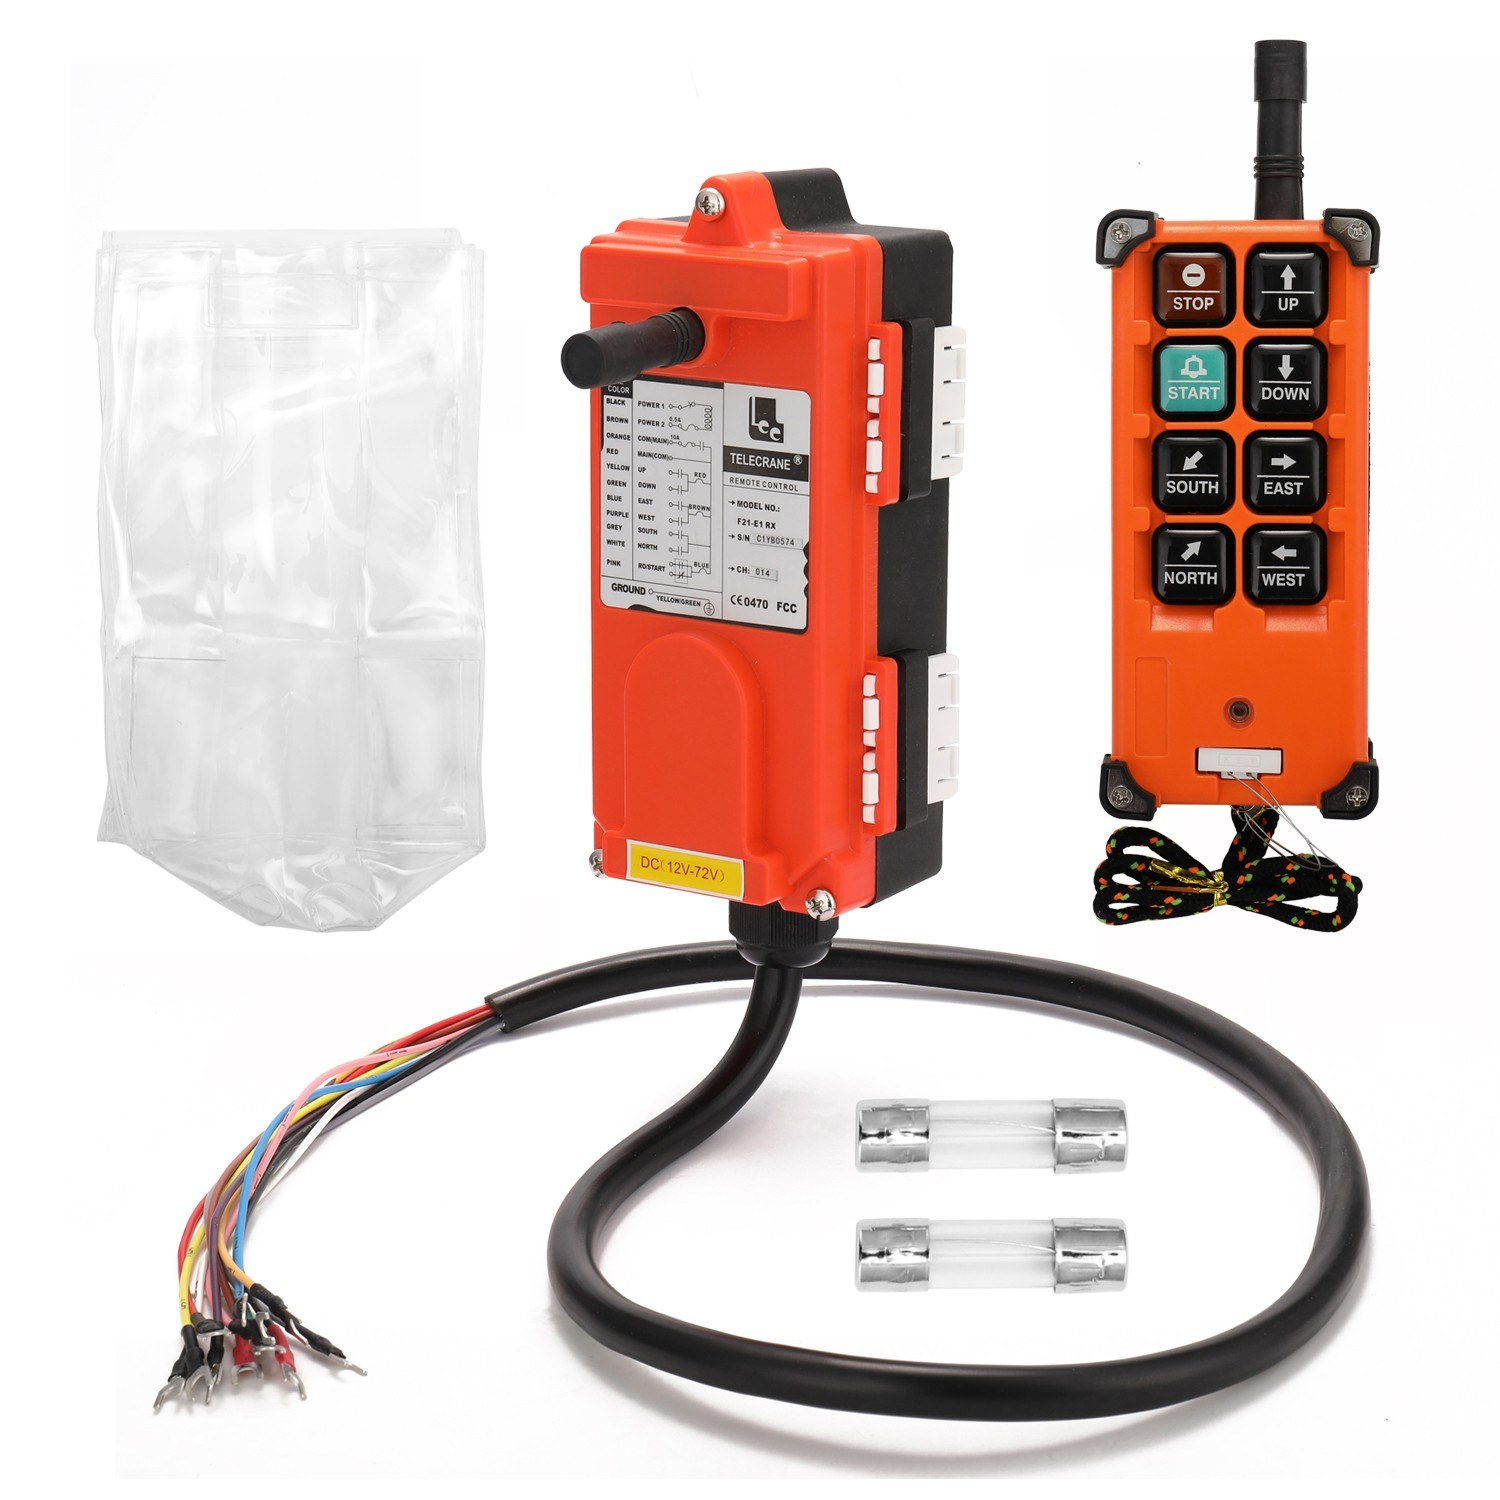 F21-E1B DC12-72V Industrial Remote Controller Switches Hoist Crane Control Lift Remote Control with One Transmitter and One Receiver